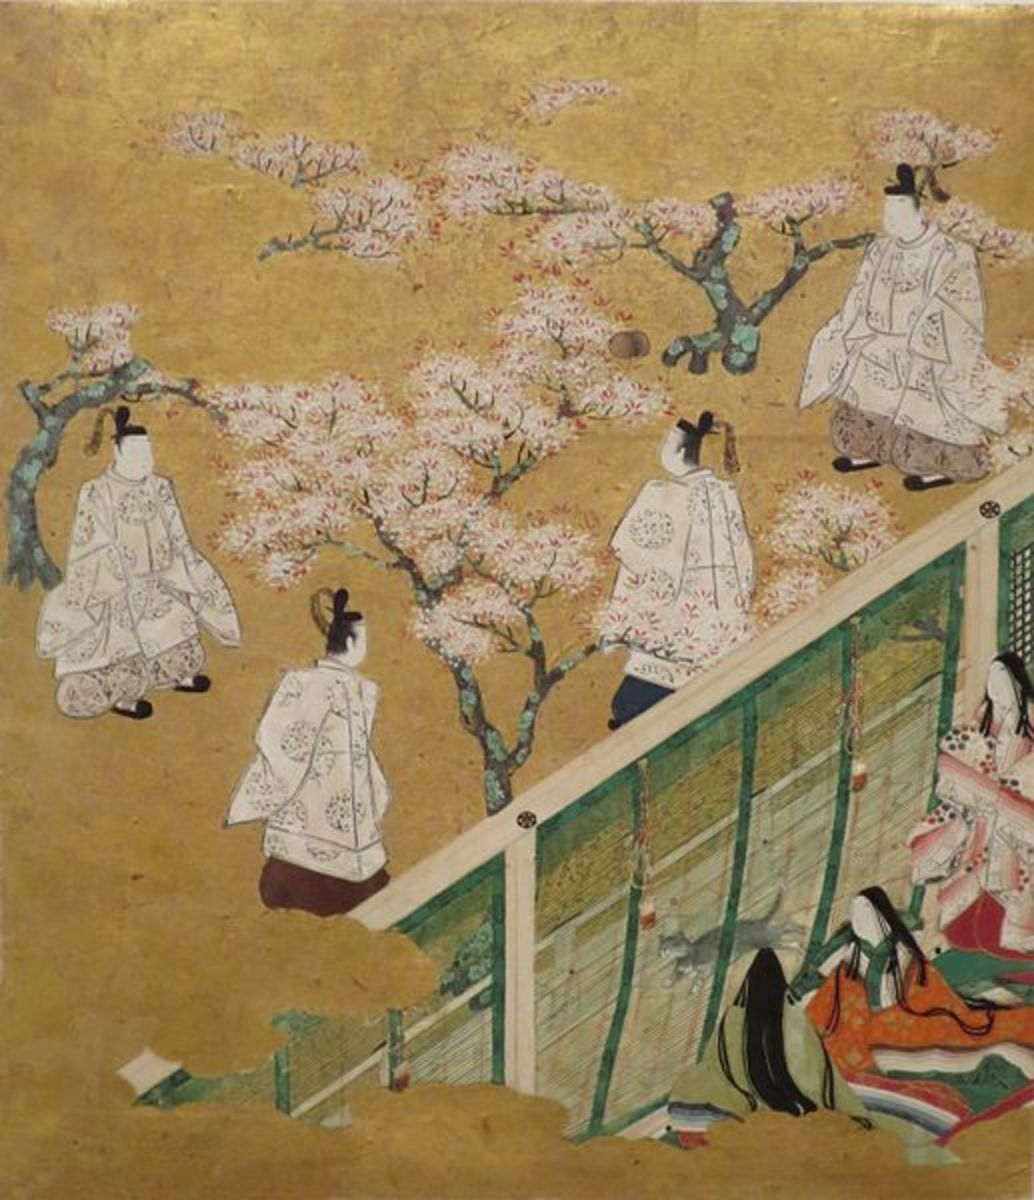 18th century anonymous illustration of an episode in The Tale of Genji, now in the Honolulu Museum of Art.